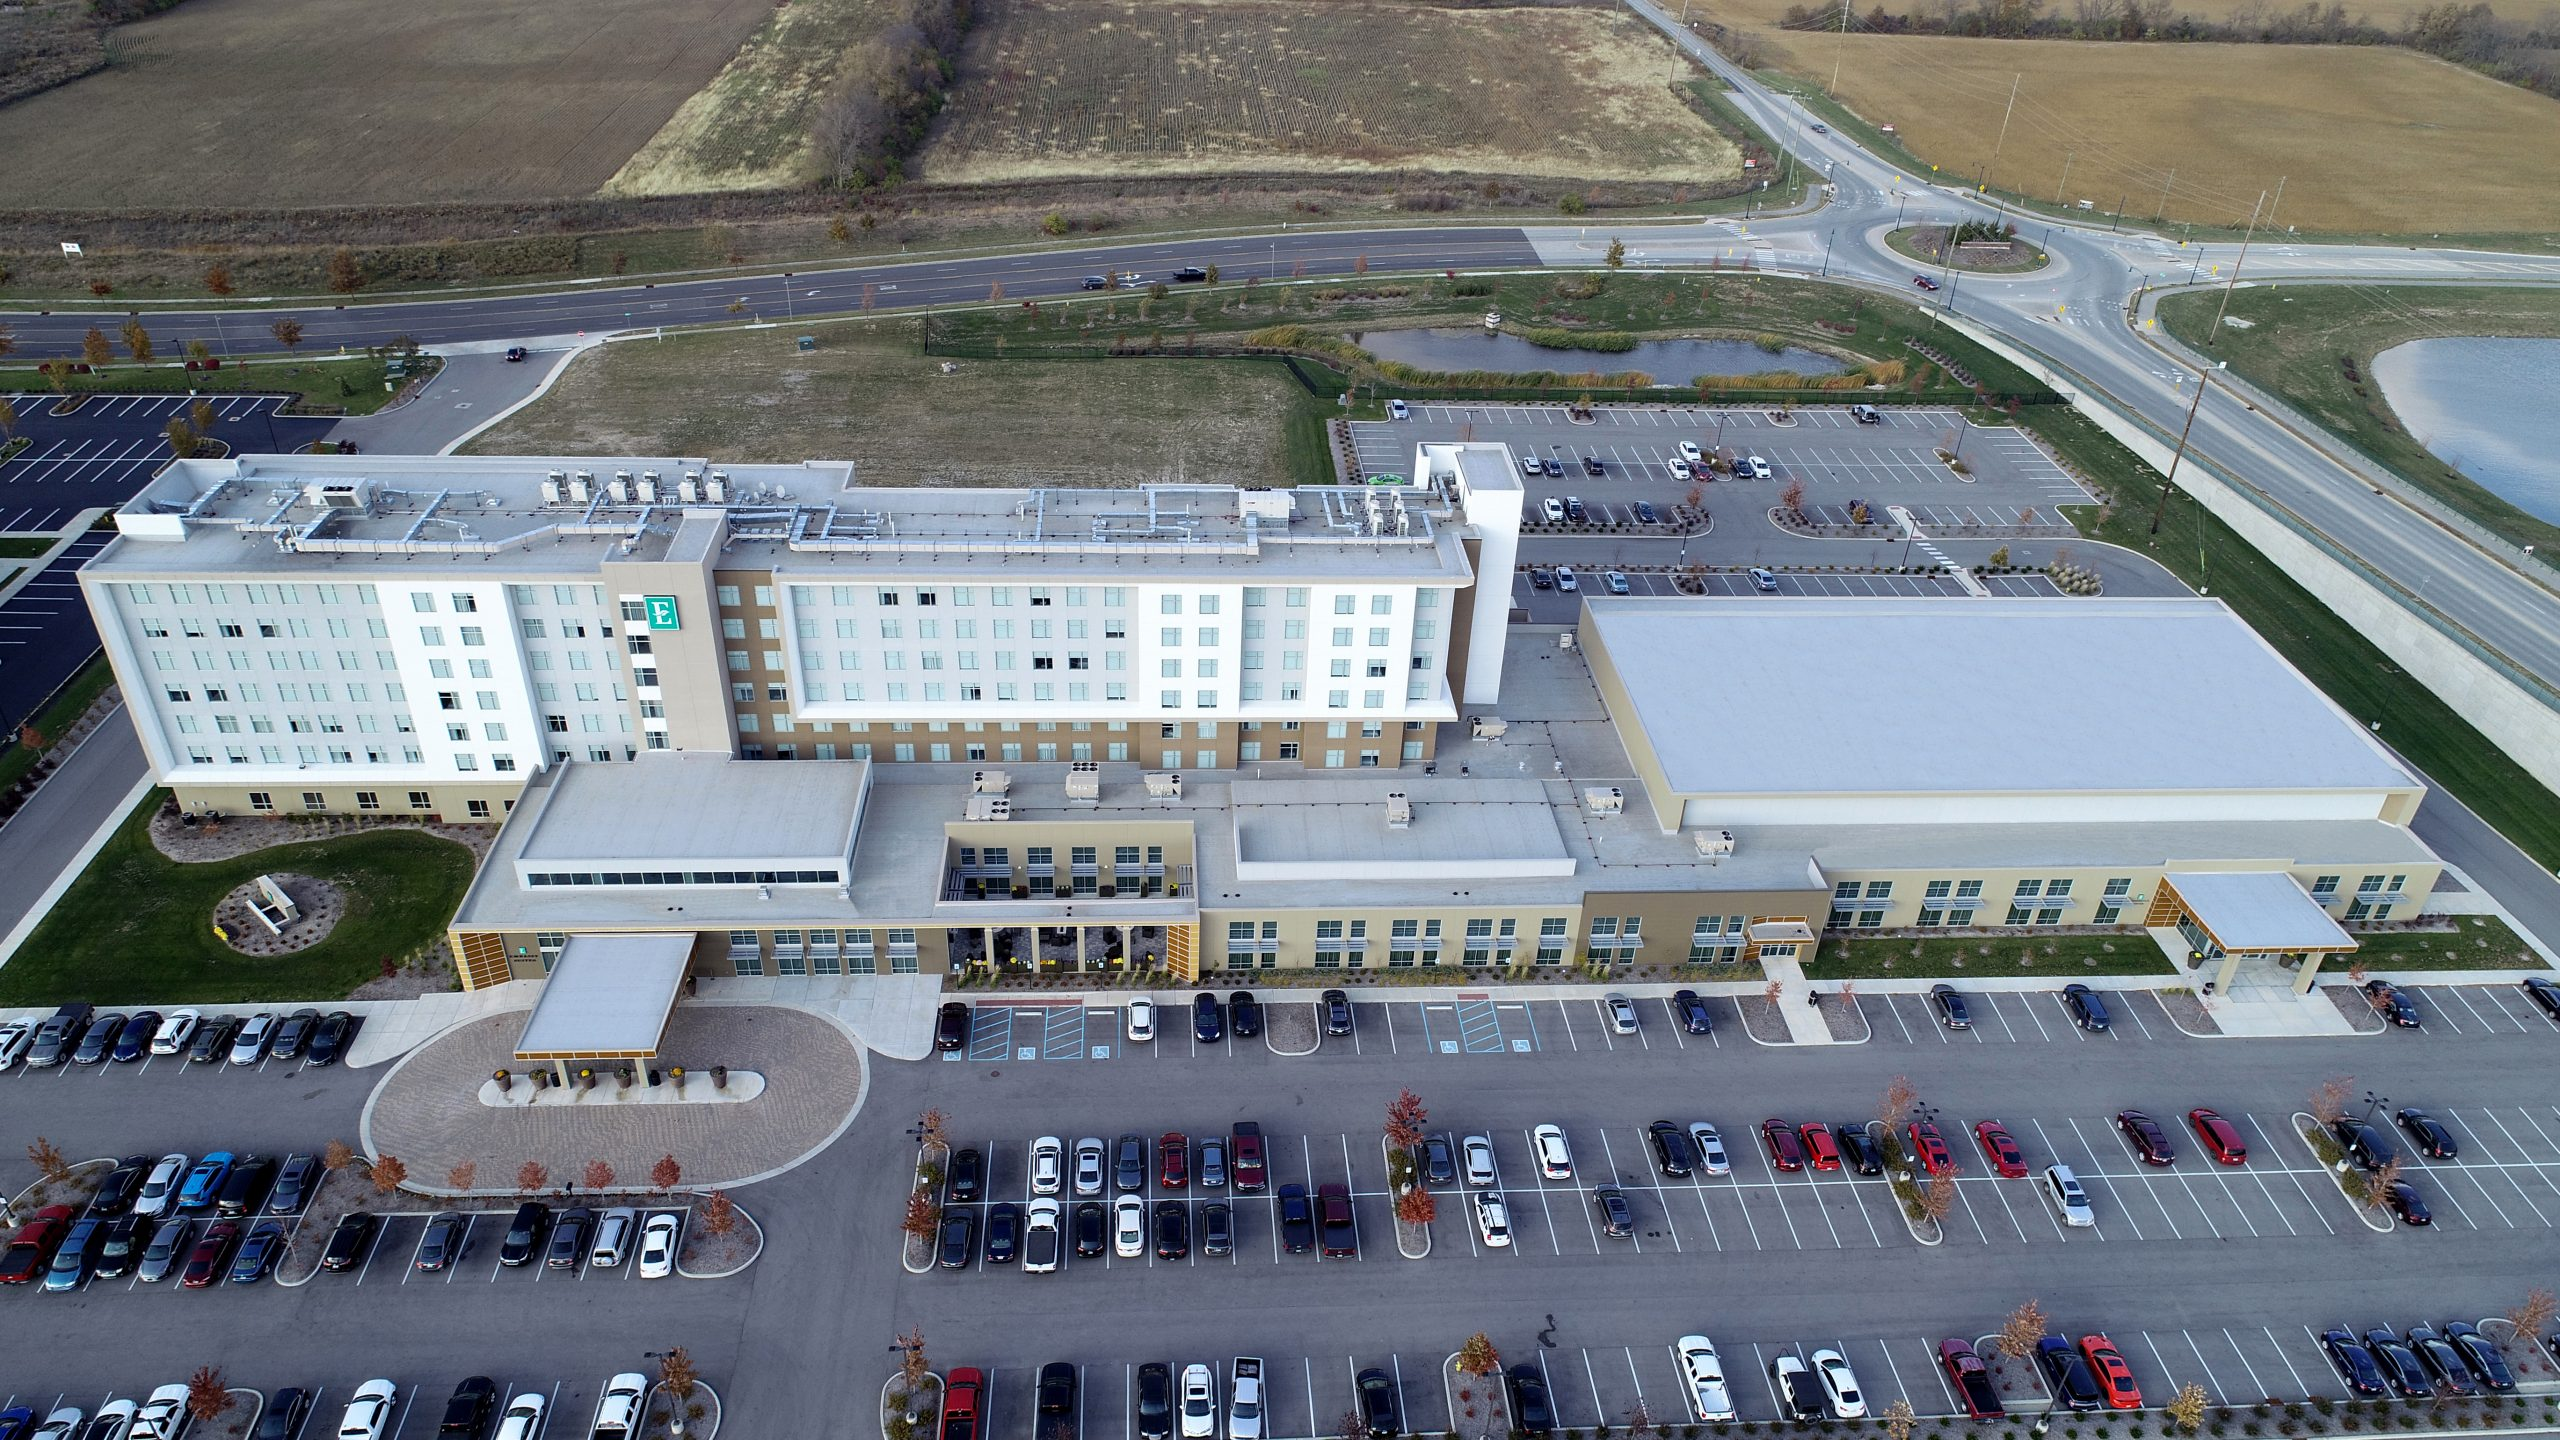 embassy suites hotel commercial roofing project by ce reeve roofing in Indiana